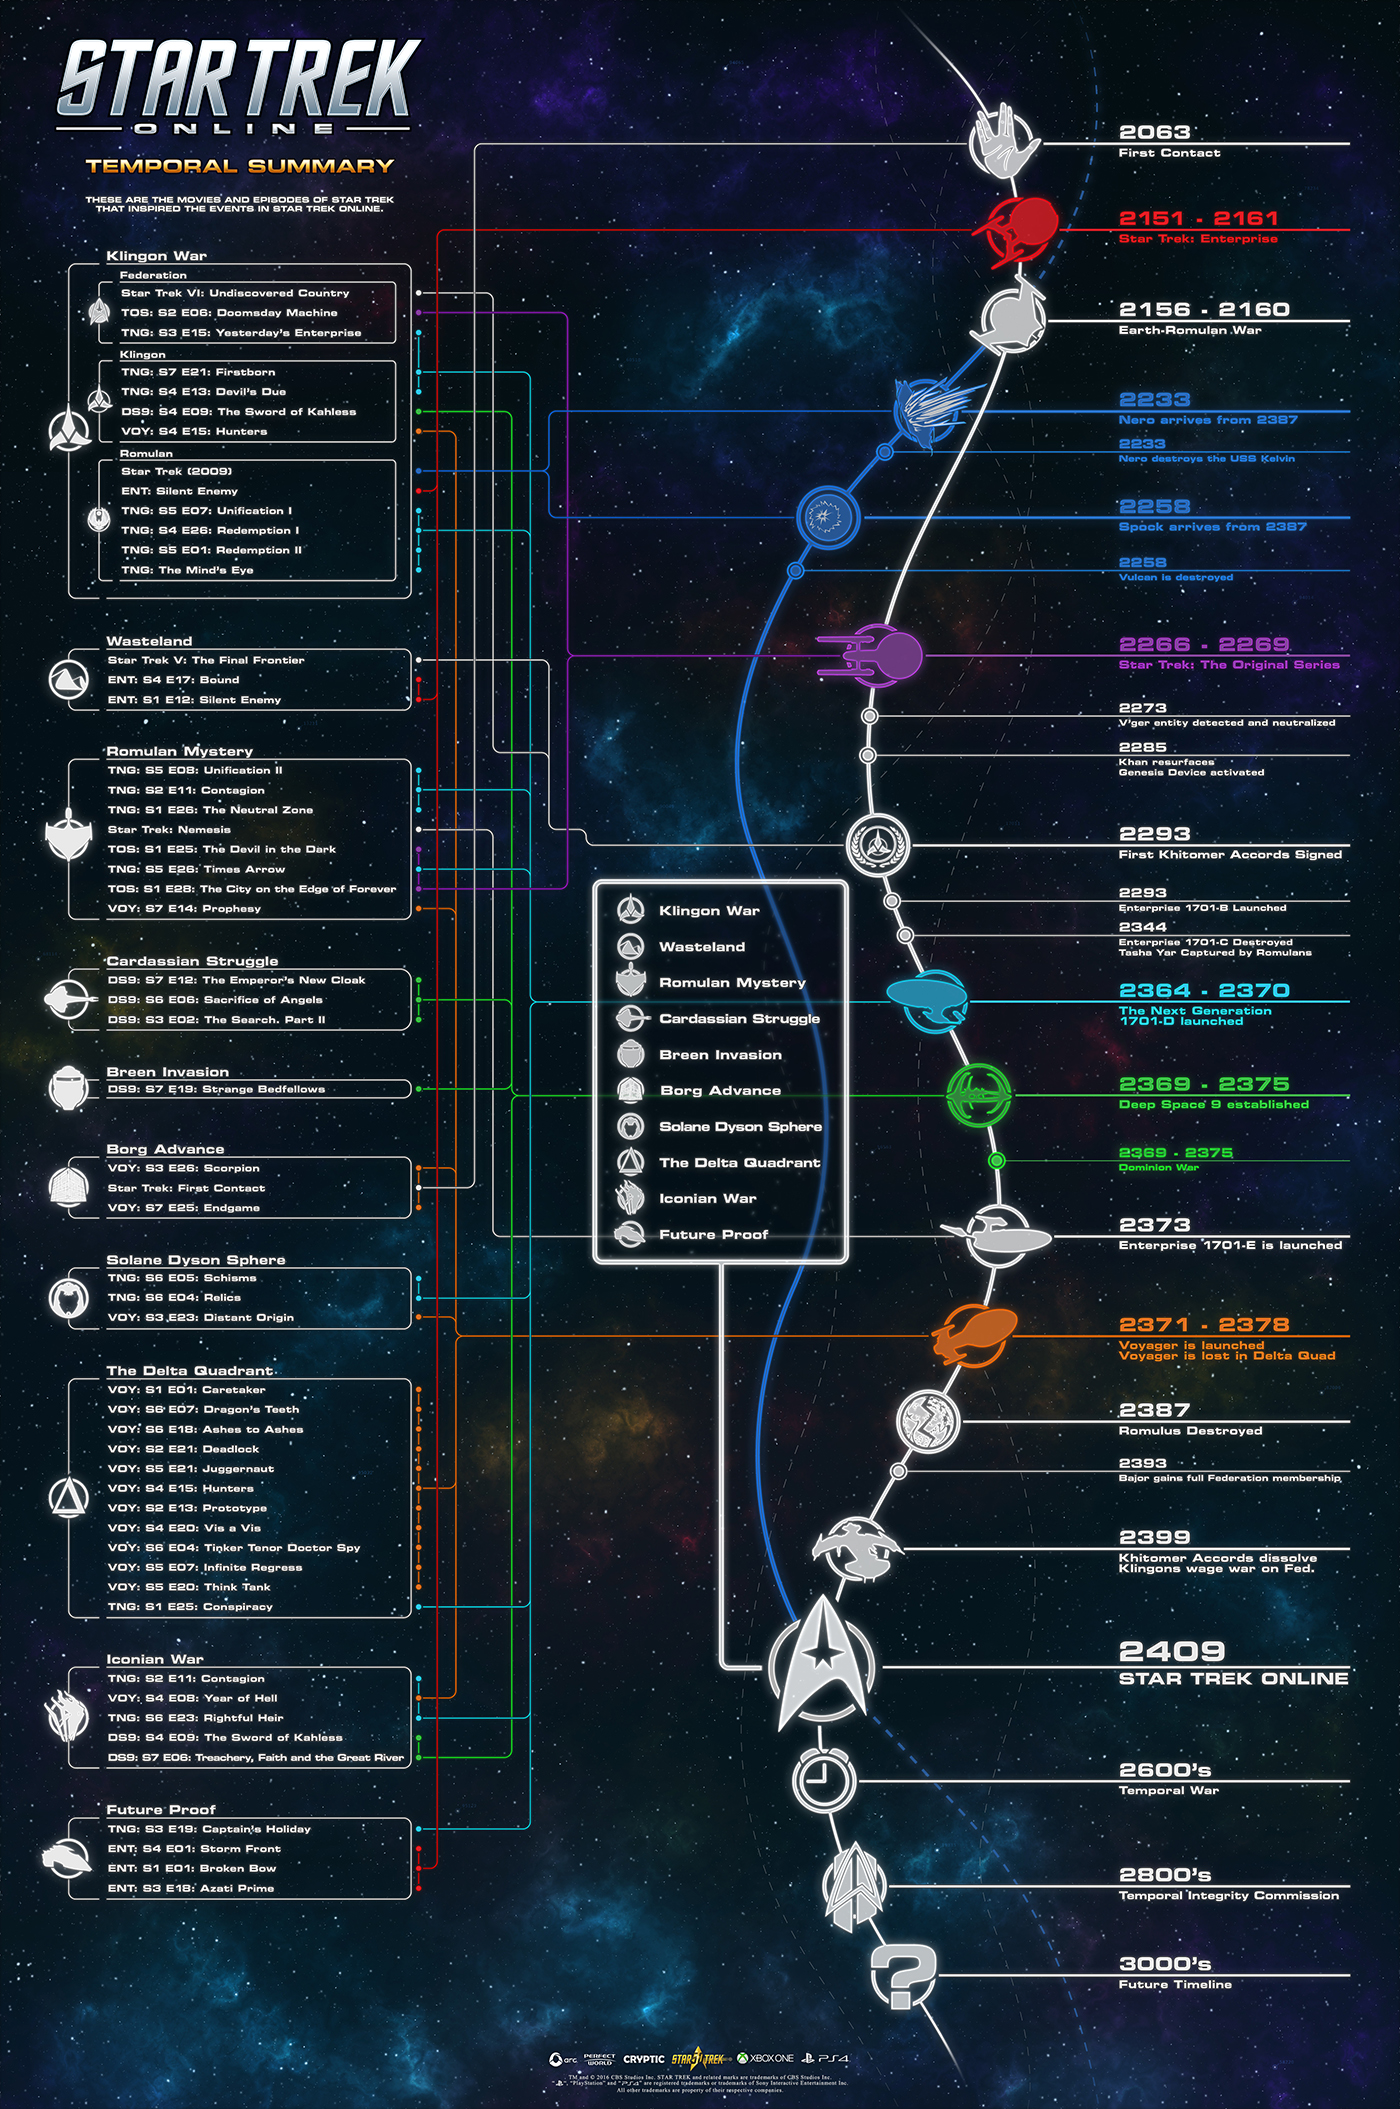 Where the Star Trek TV Shows Fit In the Prime Timeline